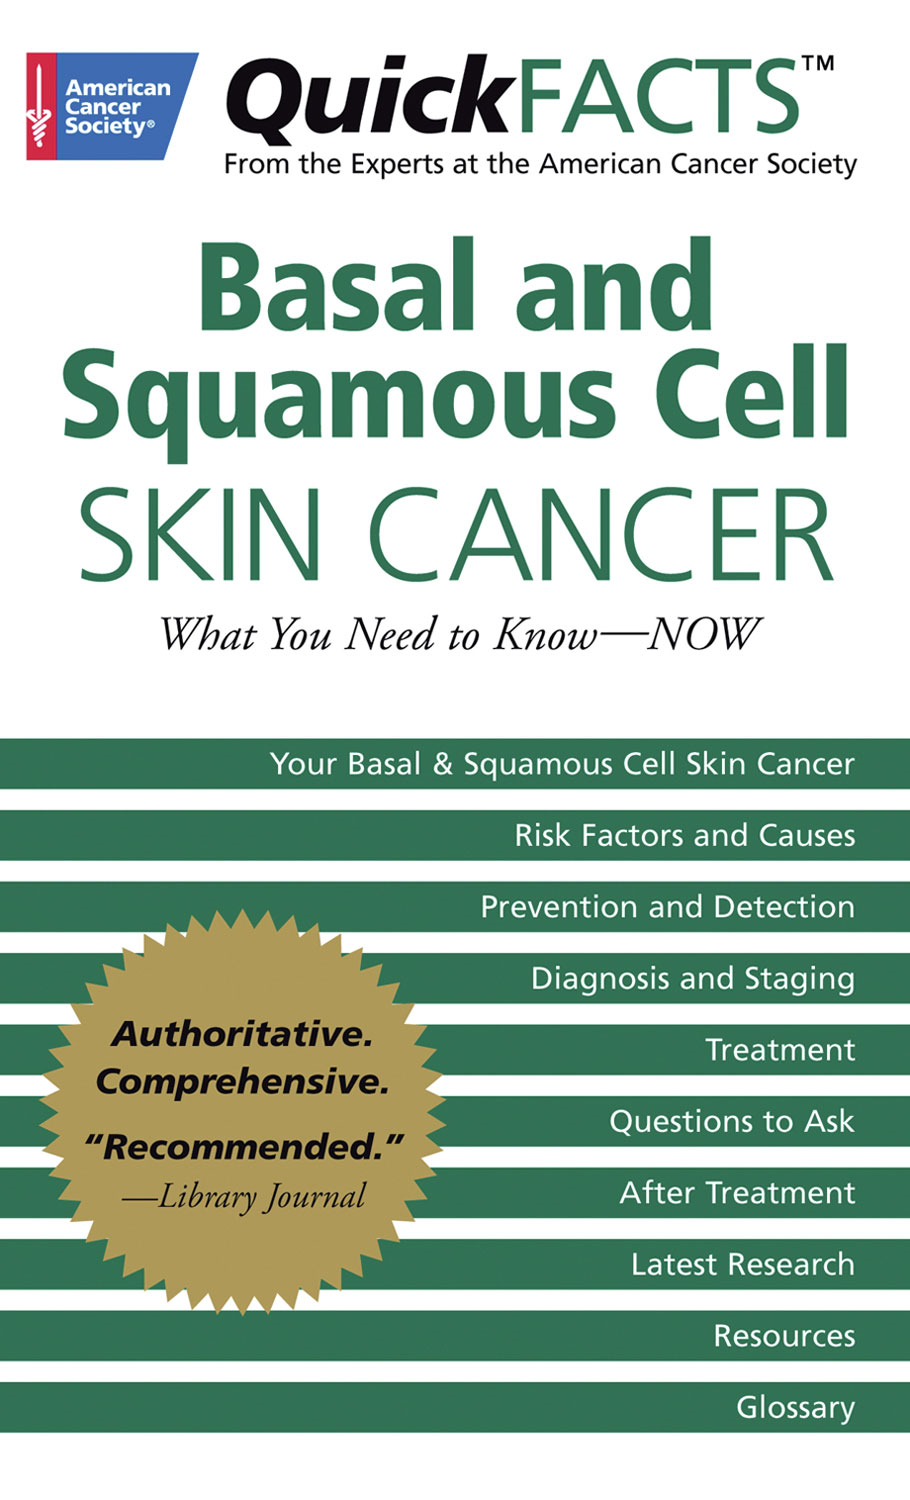 QuickFACTS Basal and Squamous Cell Skin Cancer